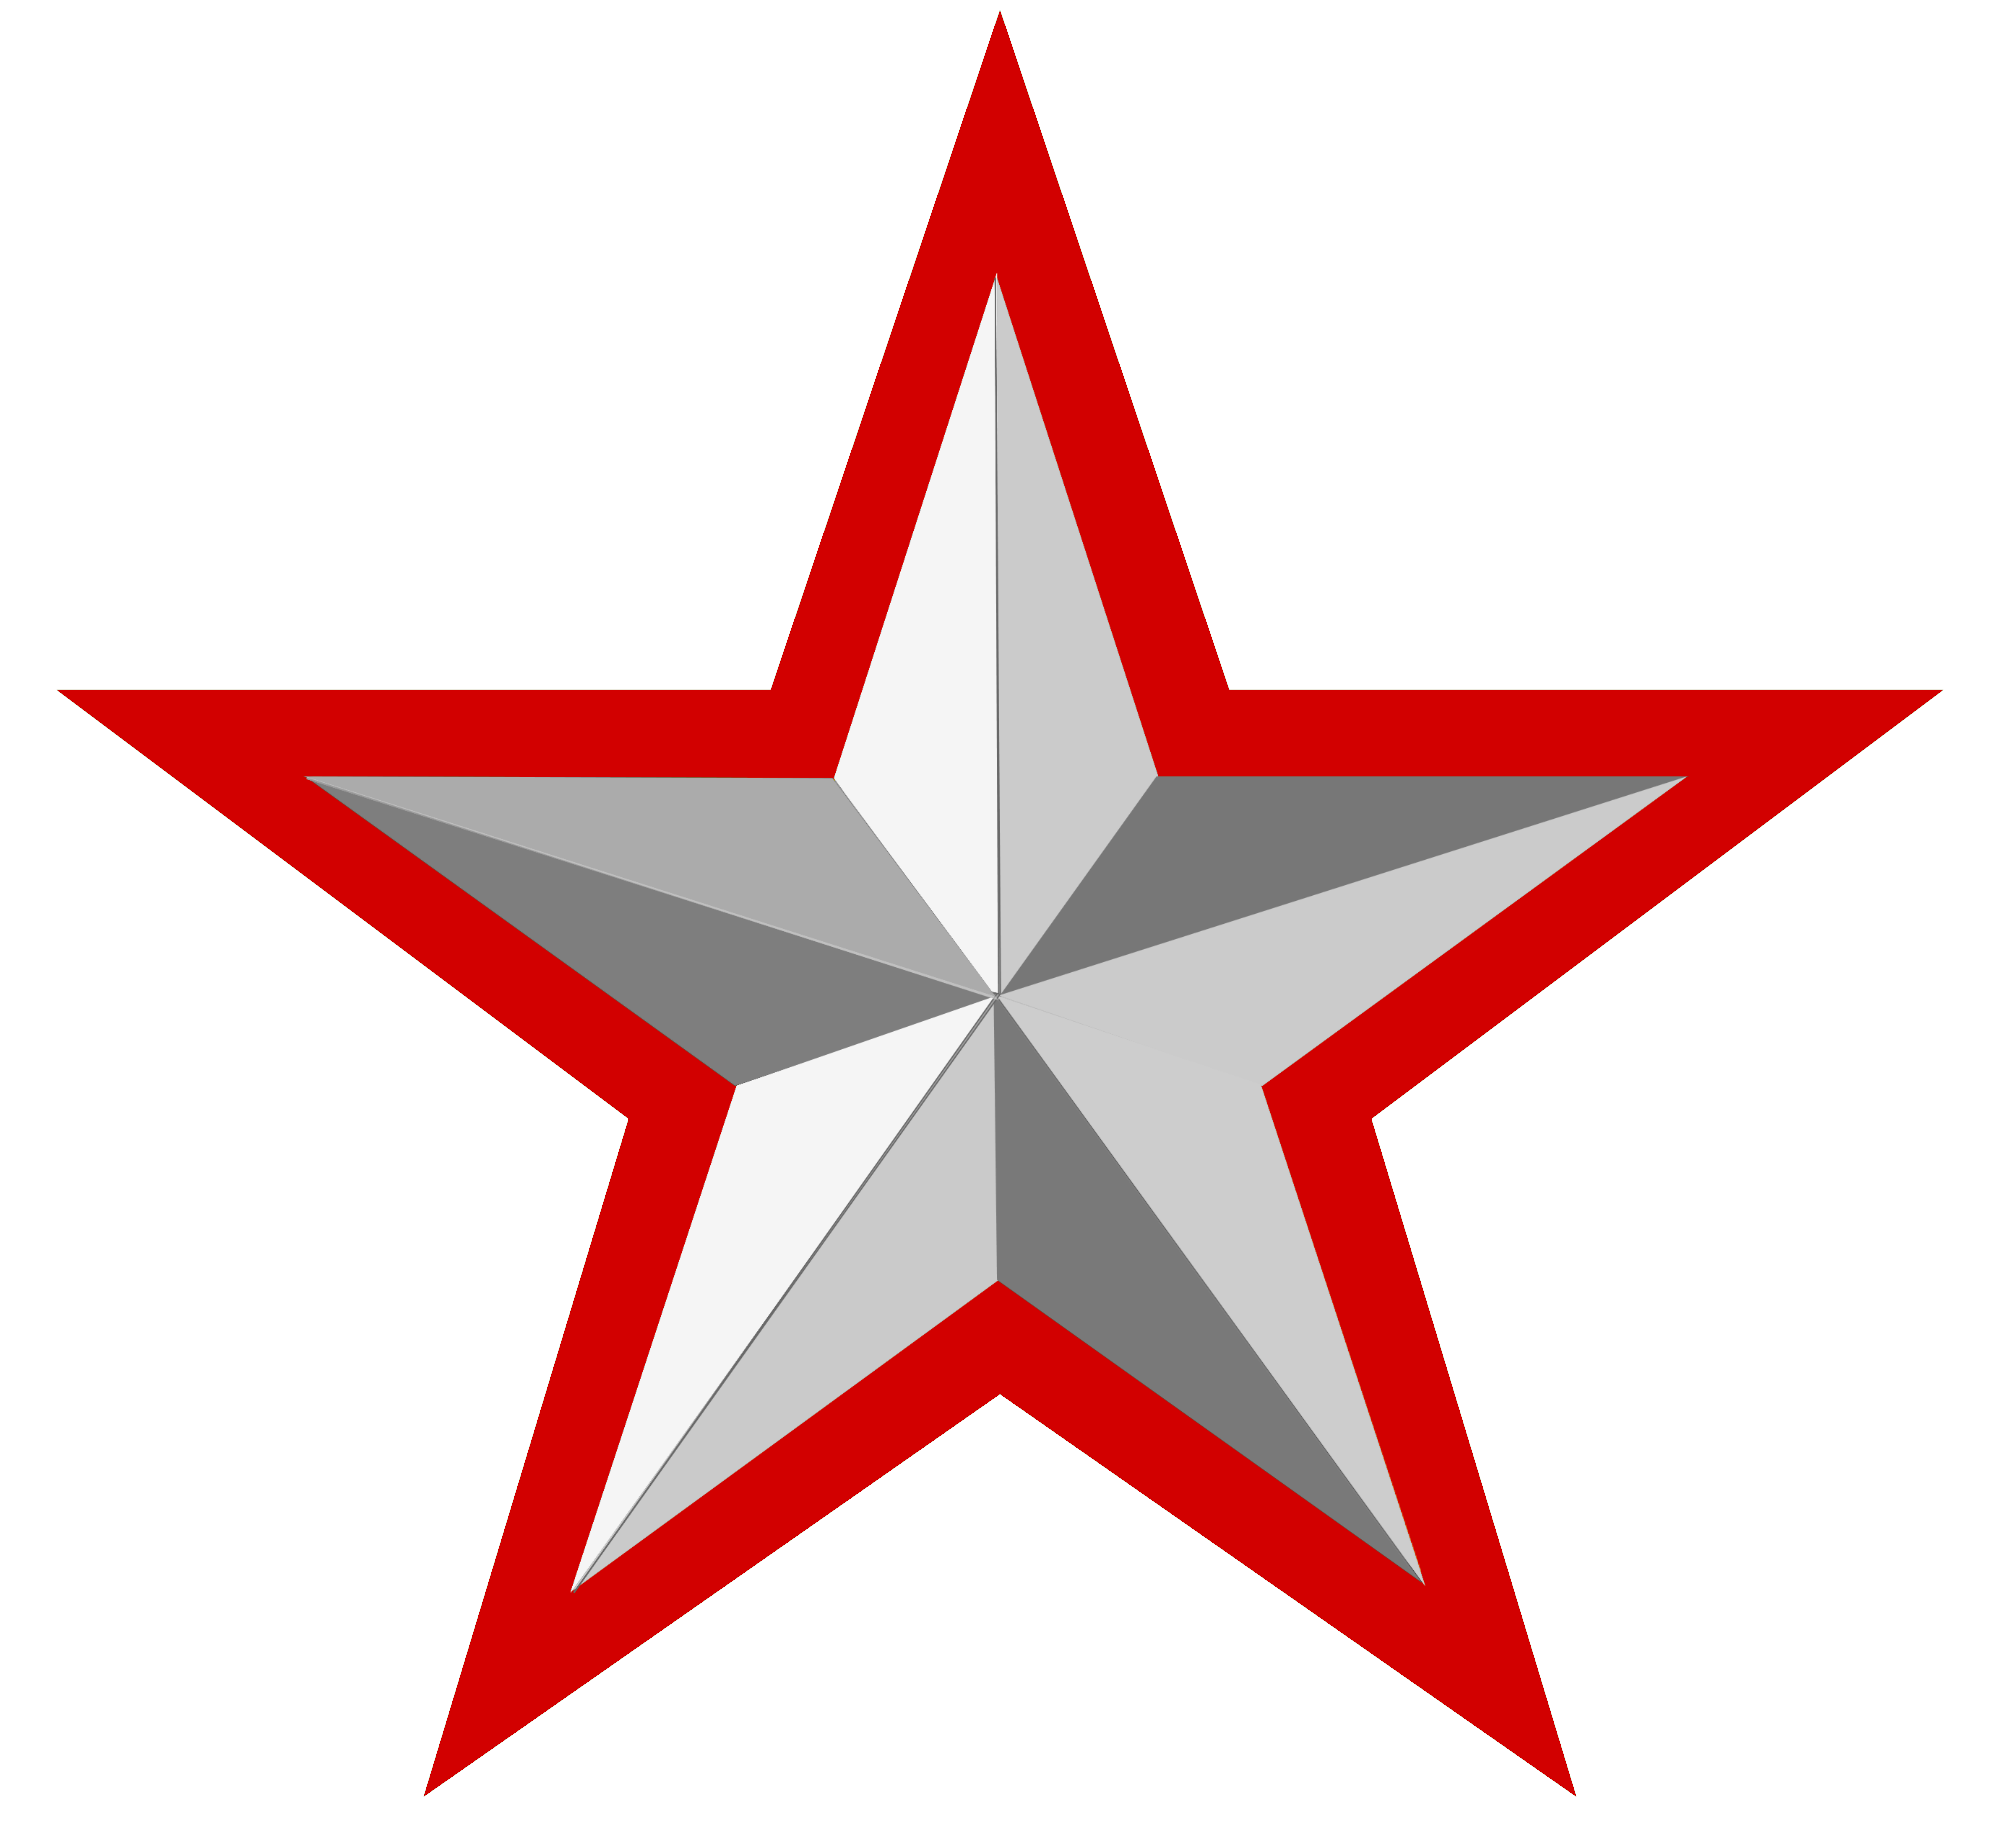 red star, file silver star with red border wikimedia commons #19081